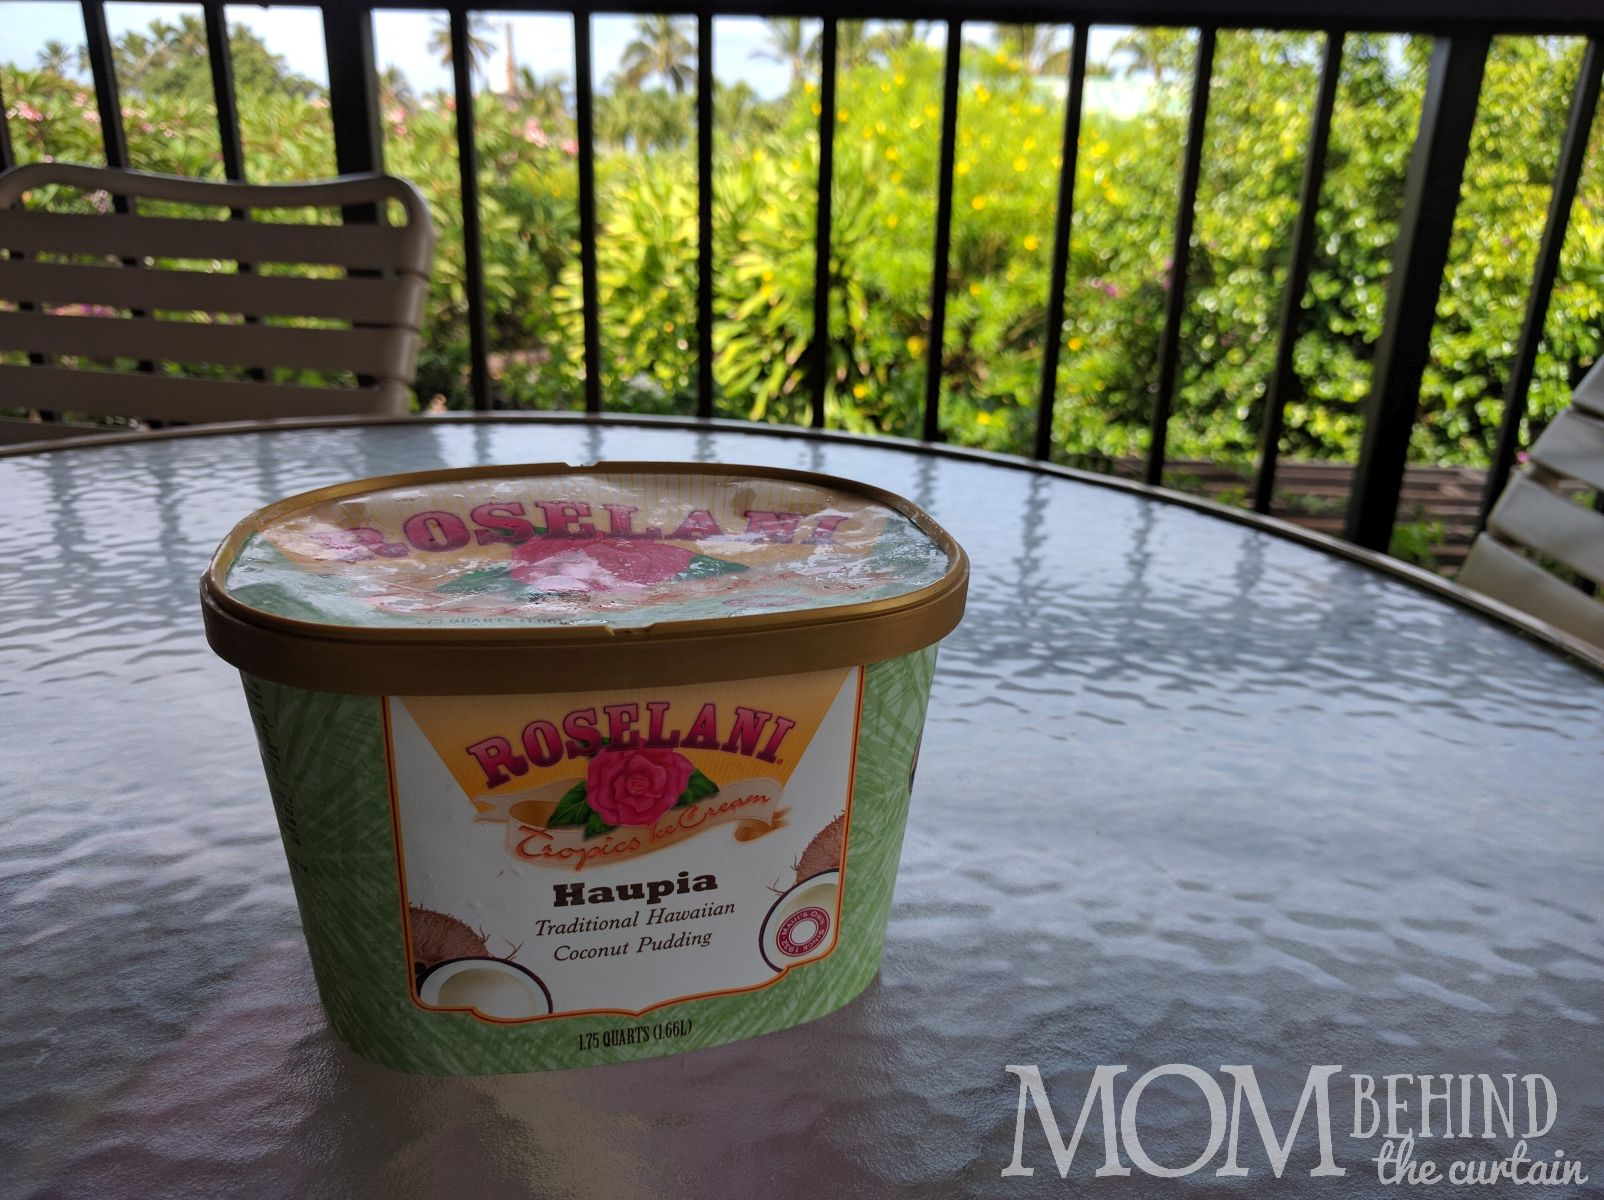 coconut custard ice cream - what to eat in Maui